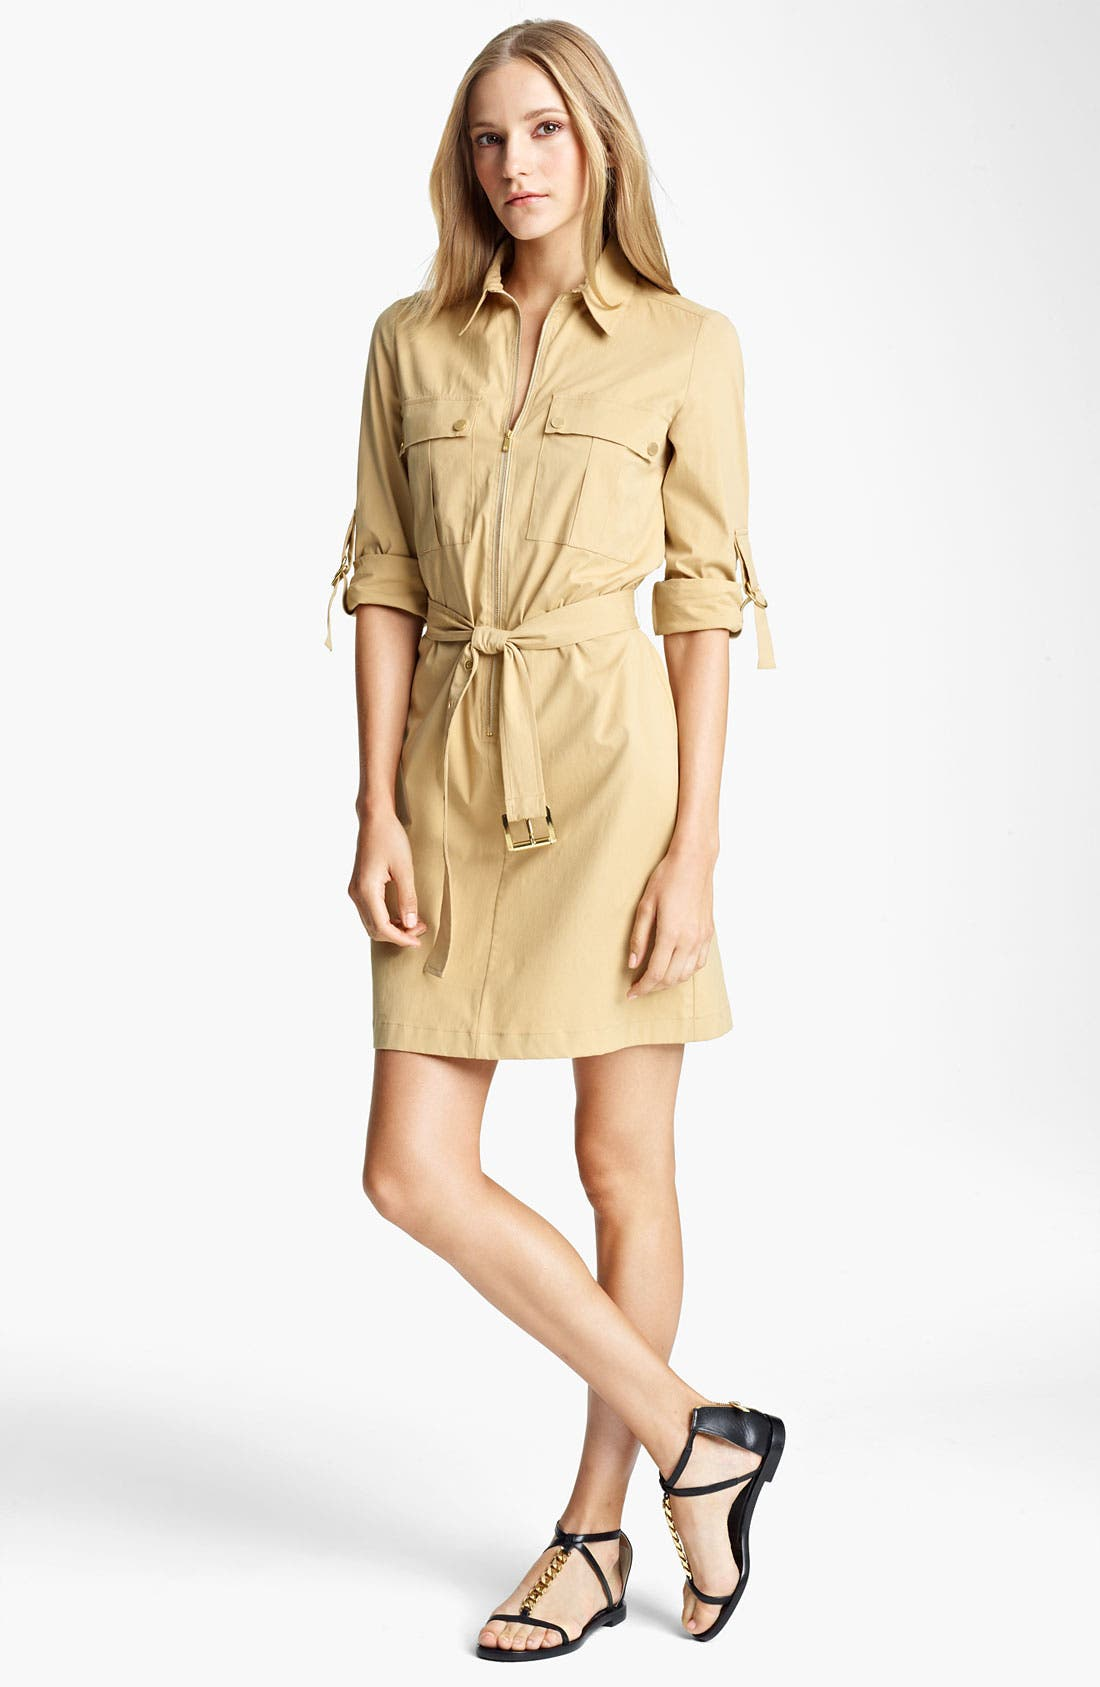 Alternate Image 1 Selected - Michael Kors Stretch Poplin Shirtdress